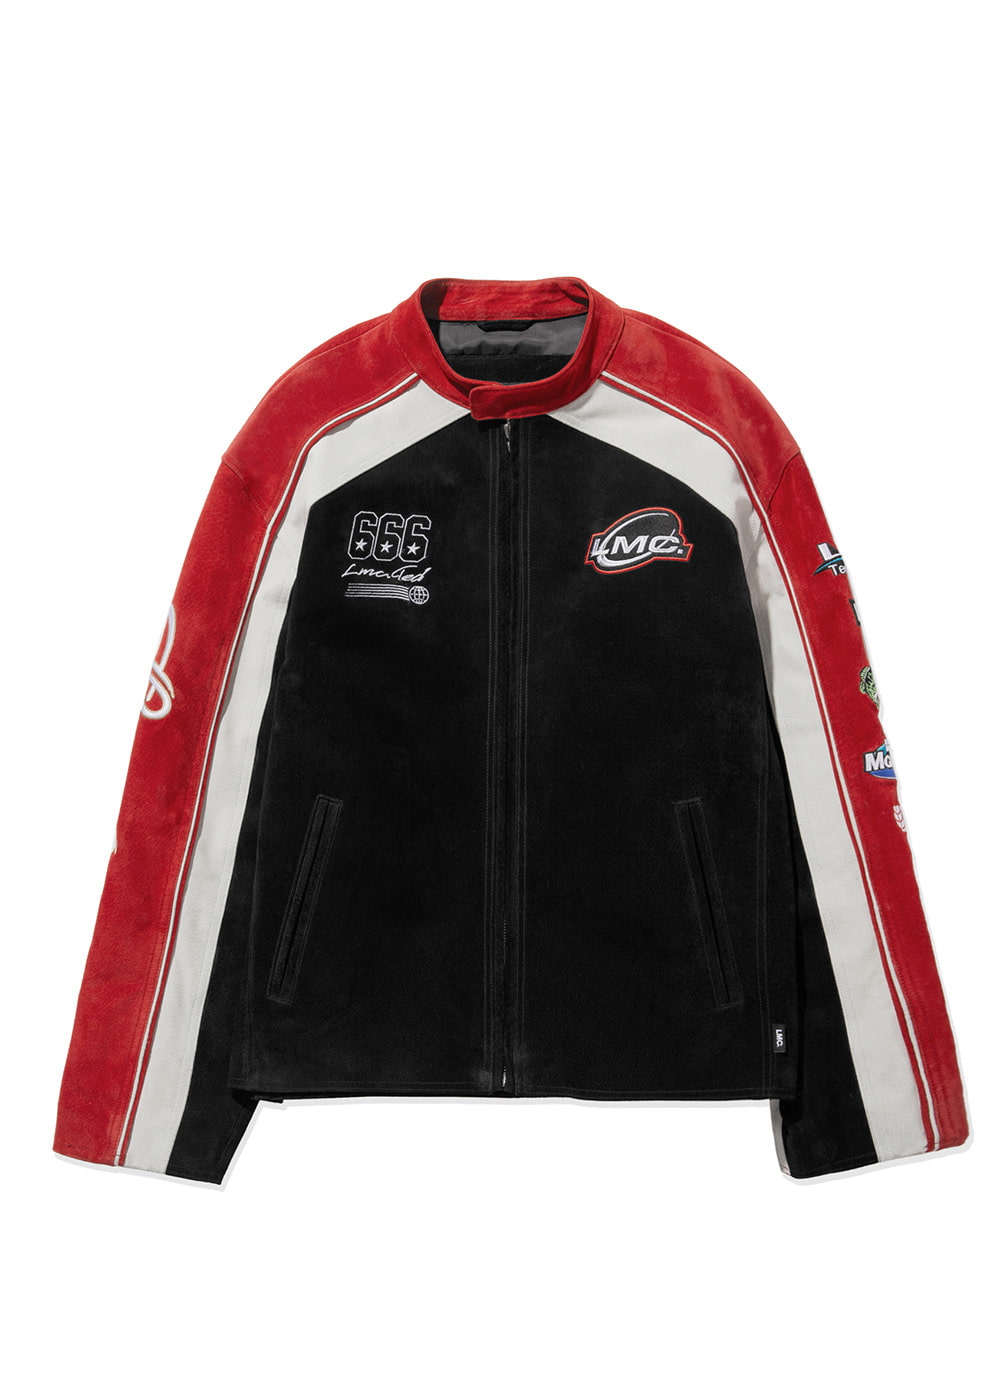 LMC LEATHER RACING JACKET black